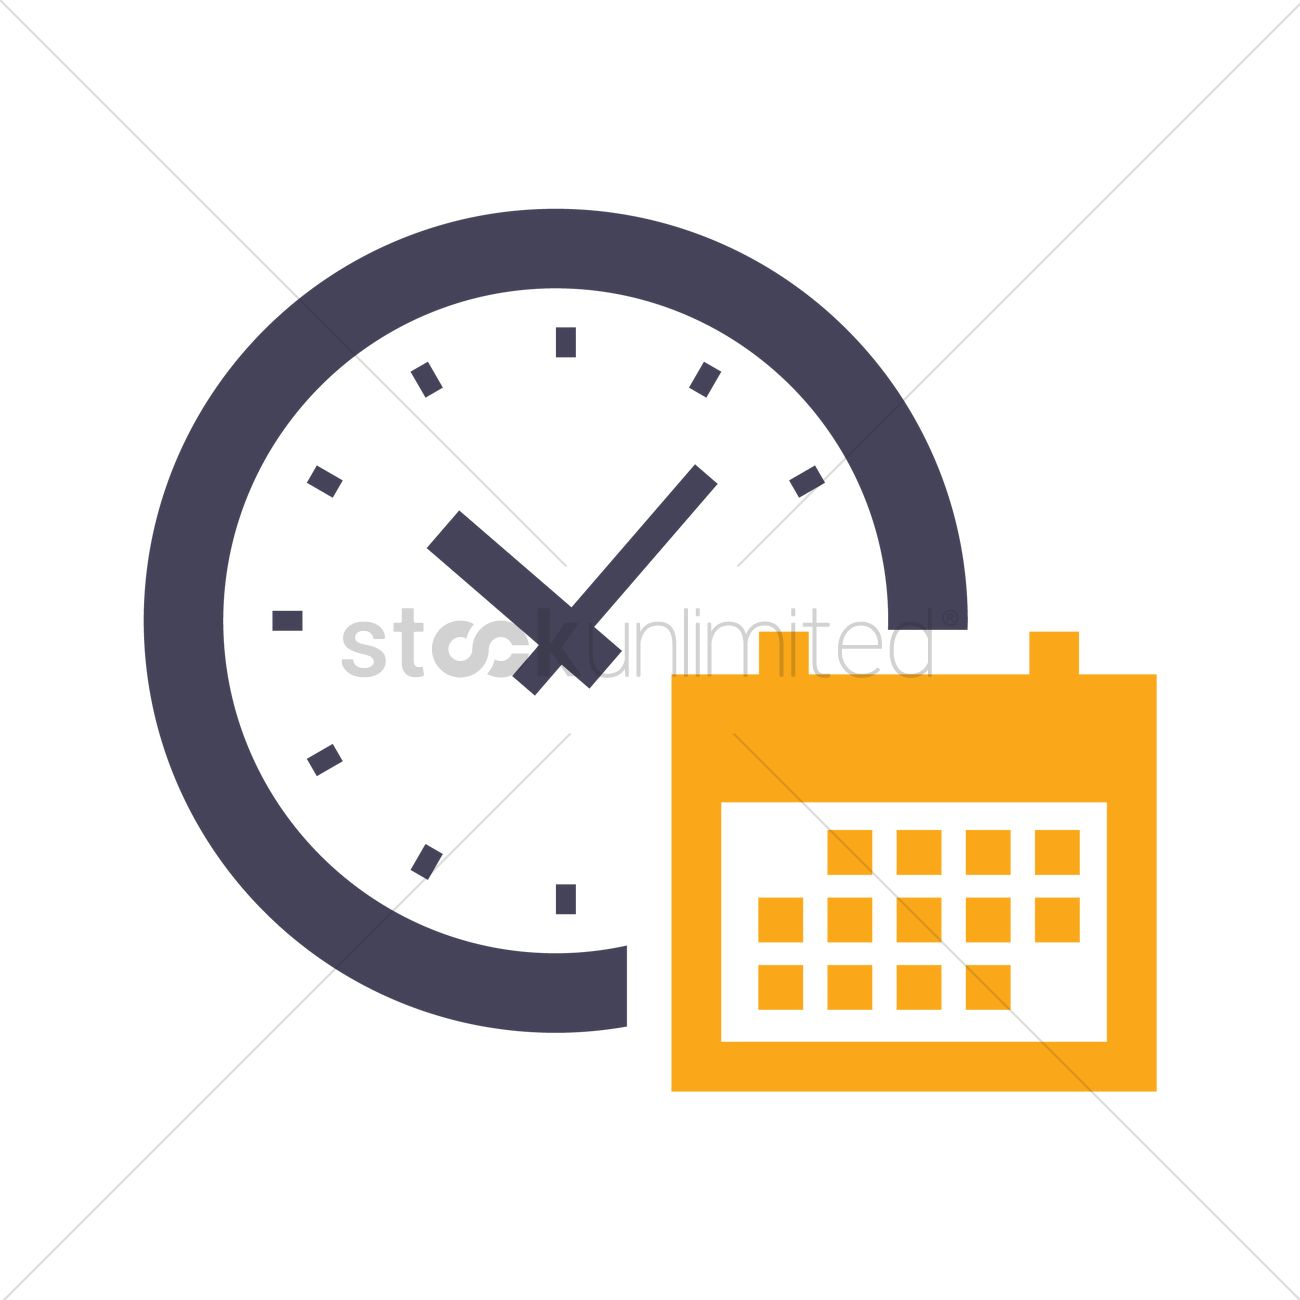 reminder icon vector image 2005409 stockunlimited reminder icon vector image 2005409